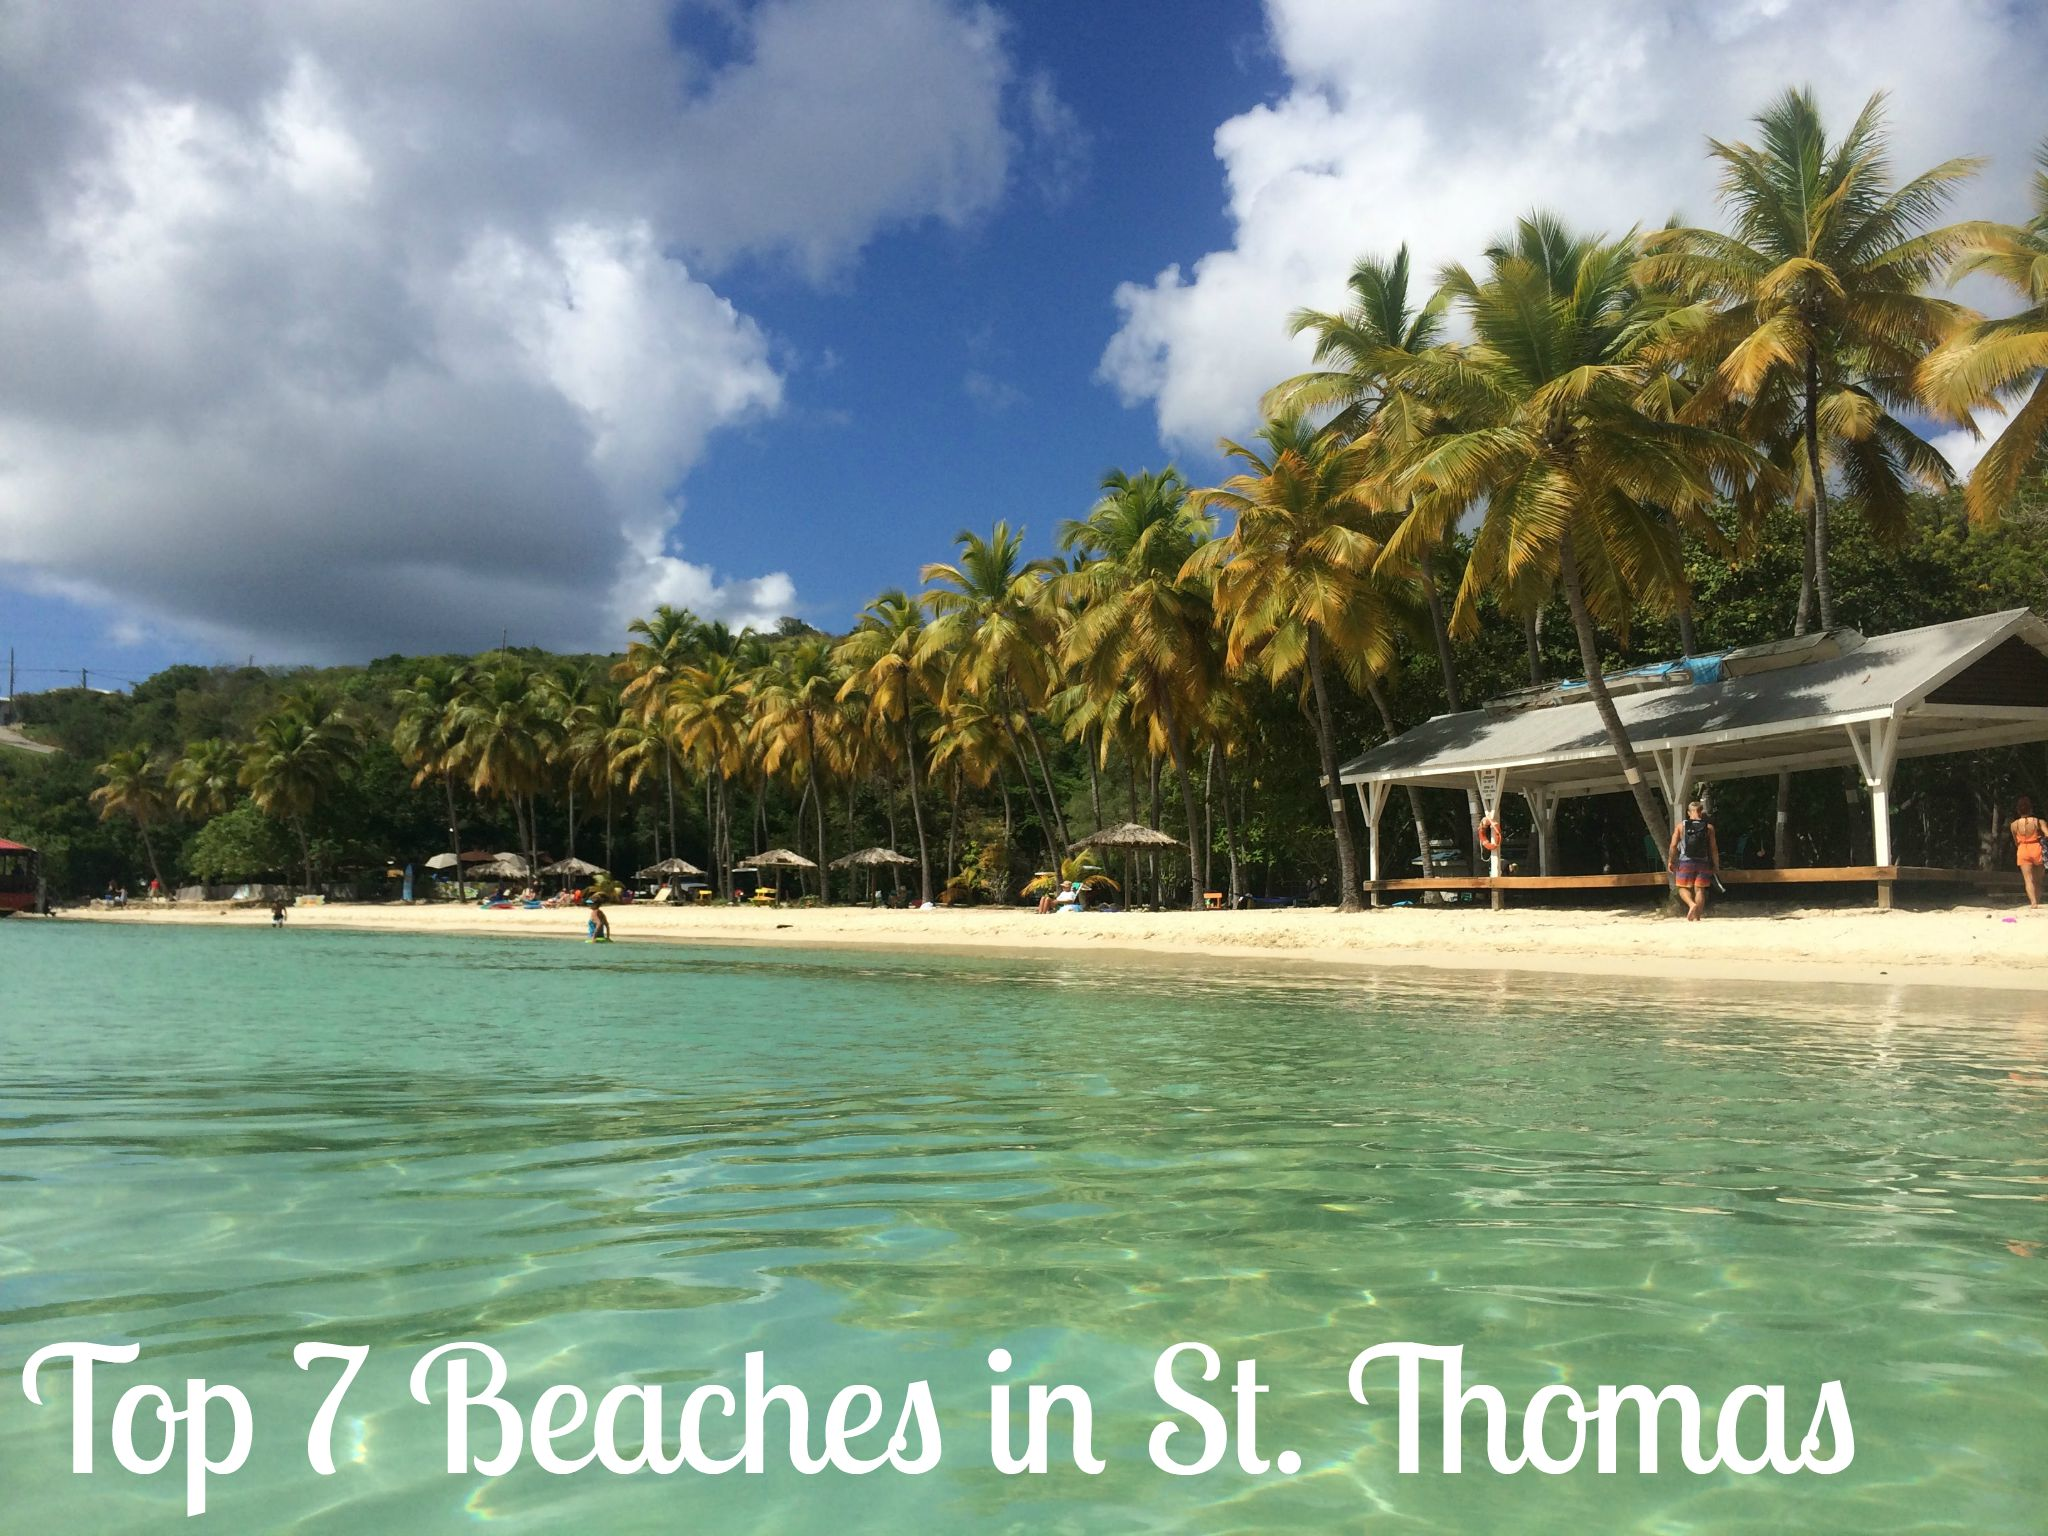 Top seven beaches in St. Thomas